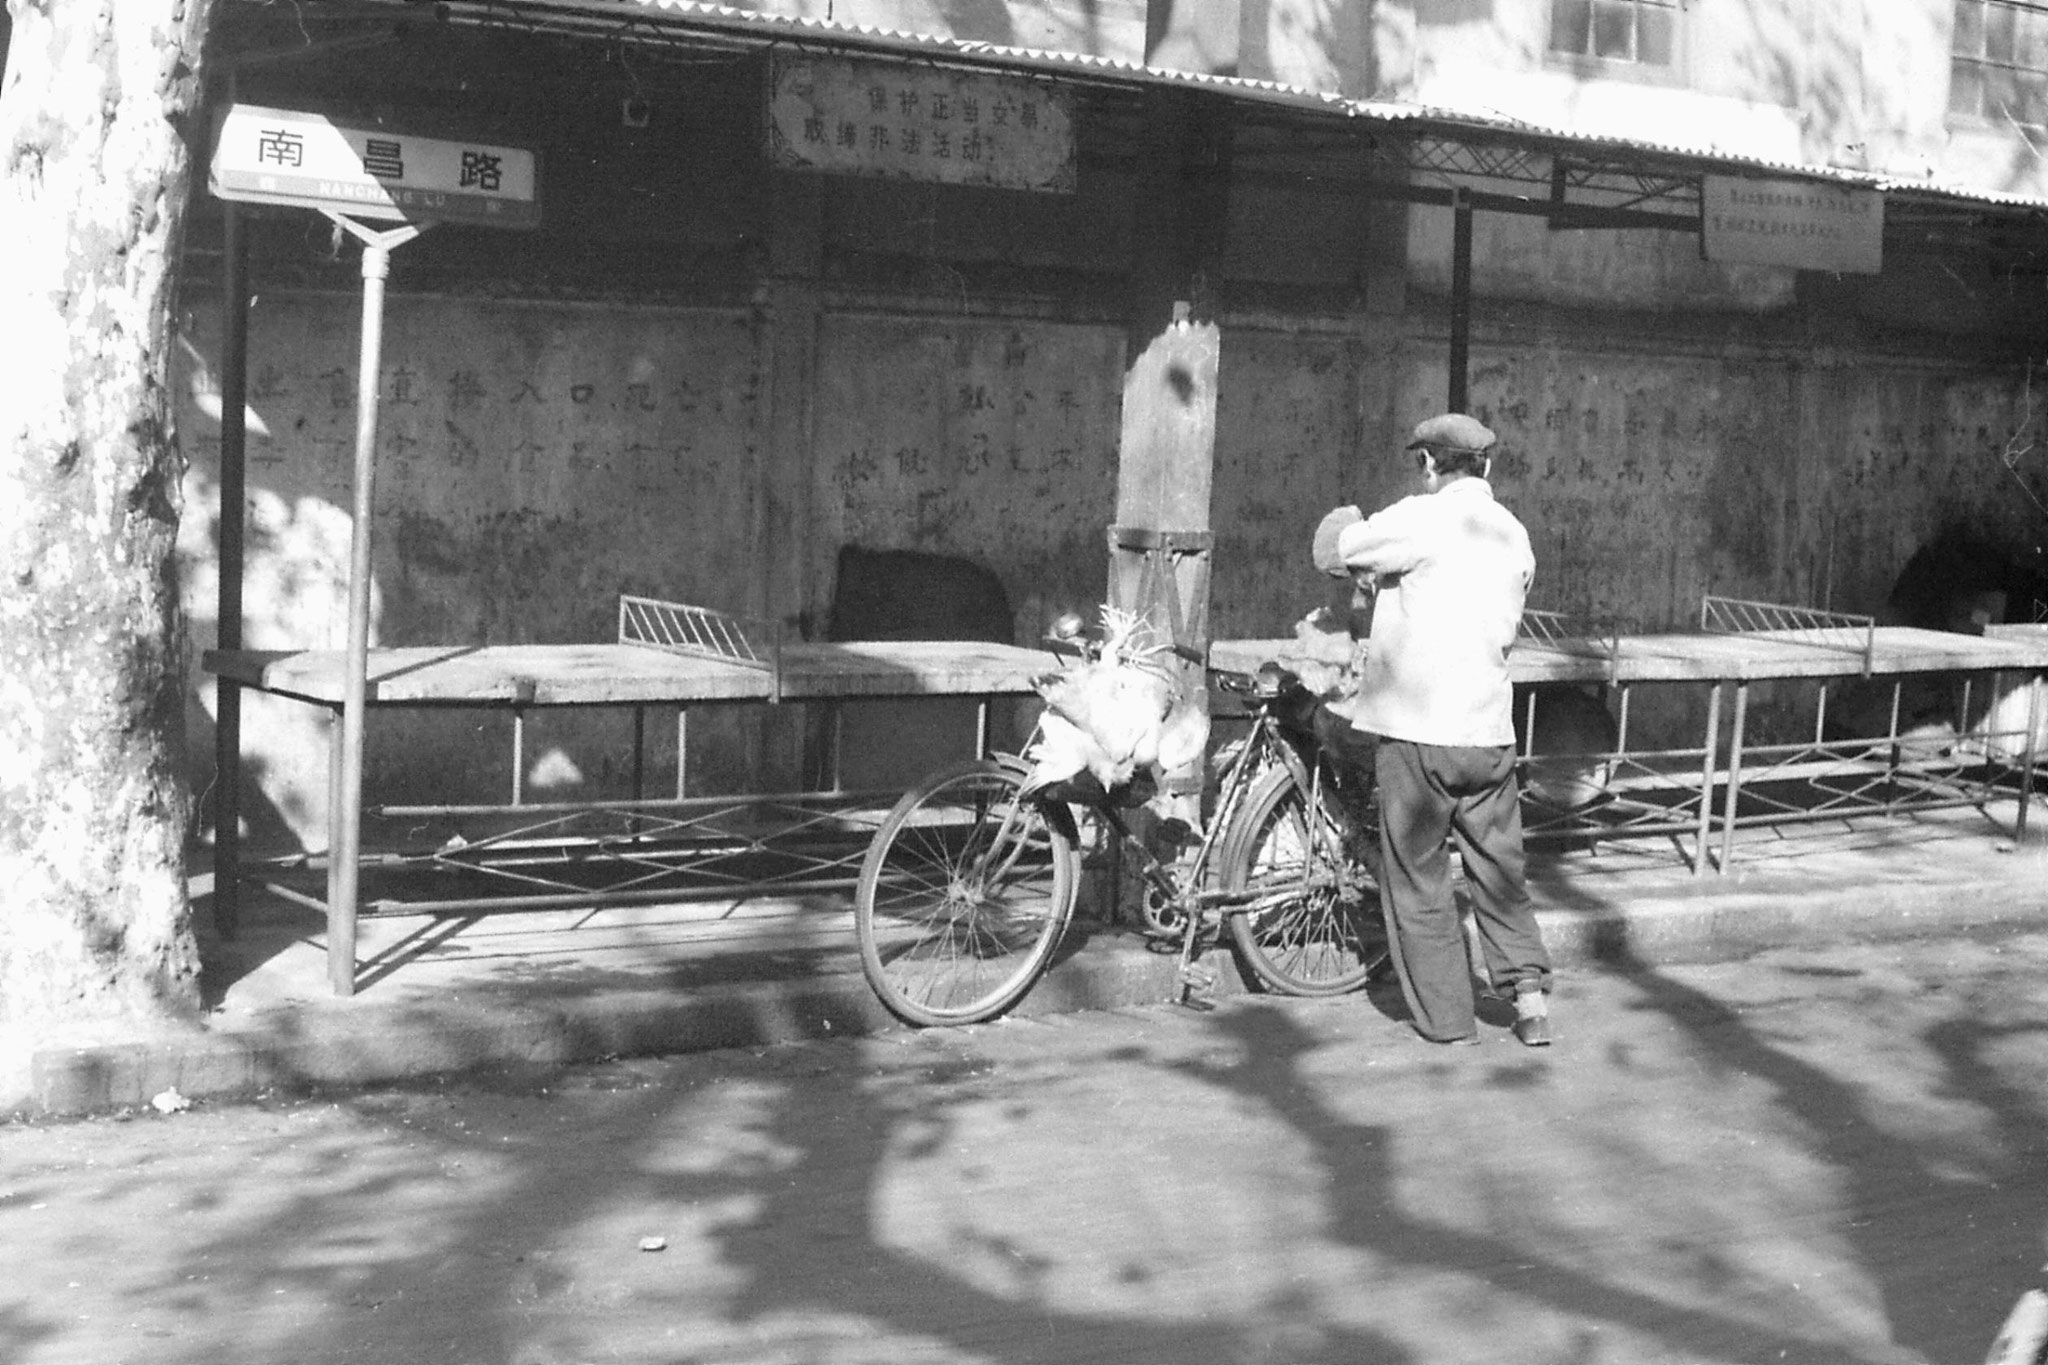 15/12/1988: 22: Nanchang Road